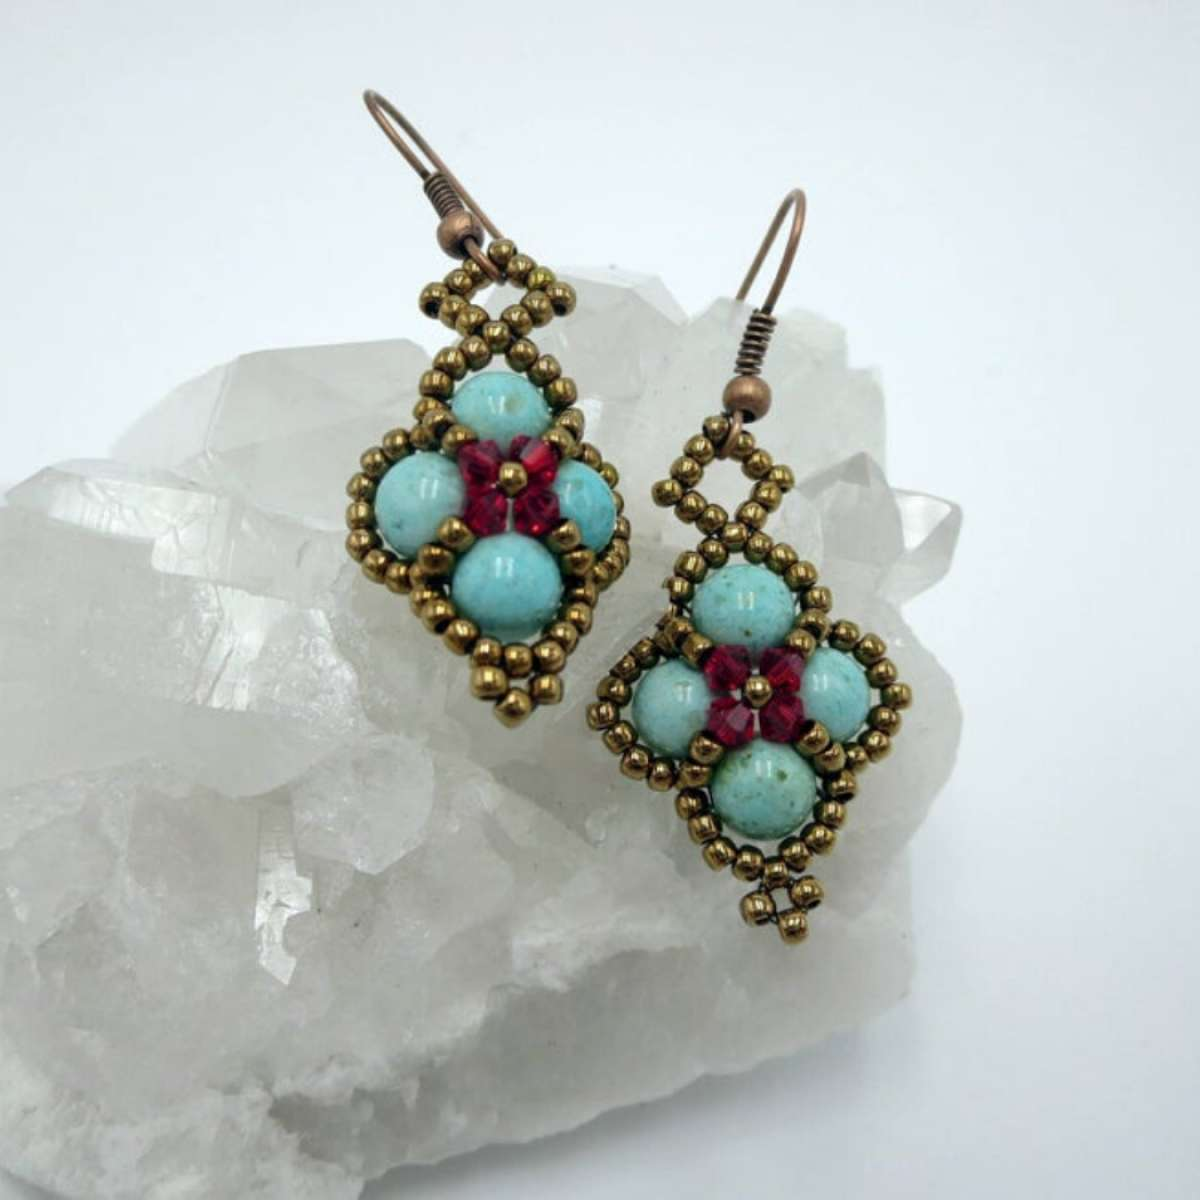 These handmade earrings by Jewels for Hope were featured on the show